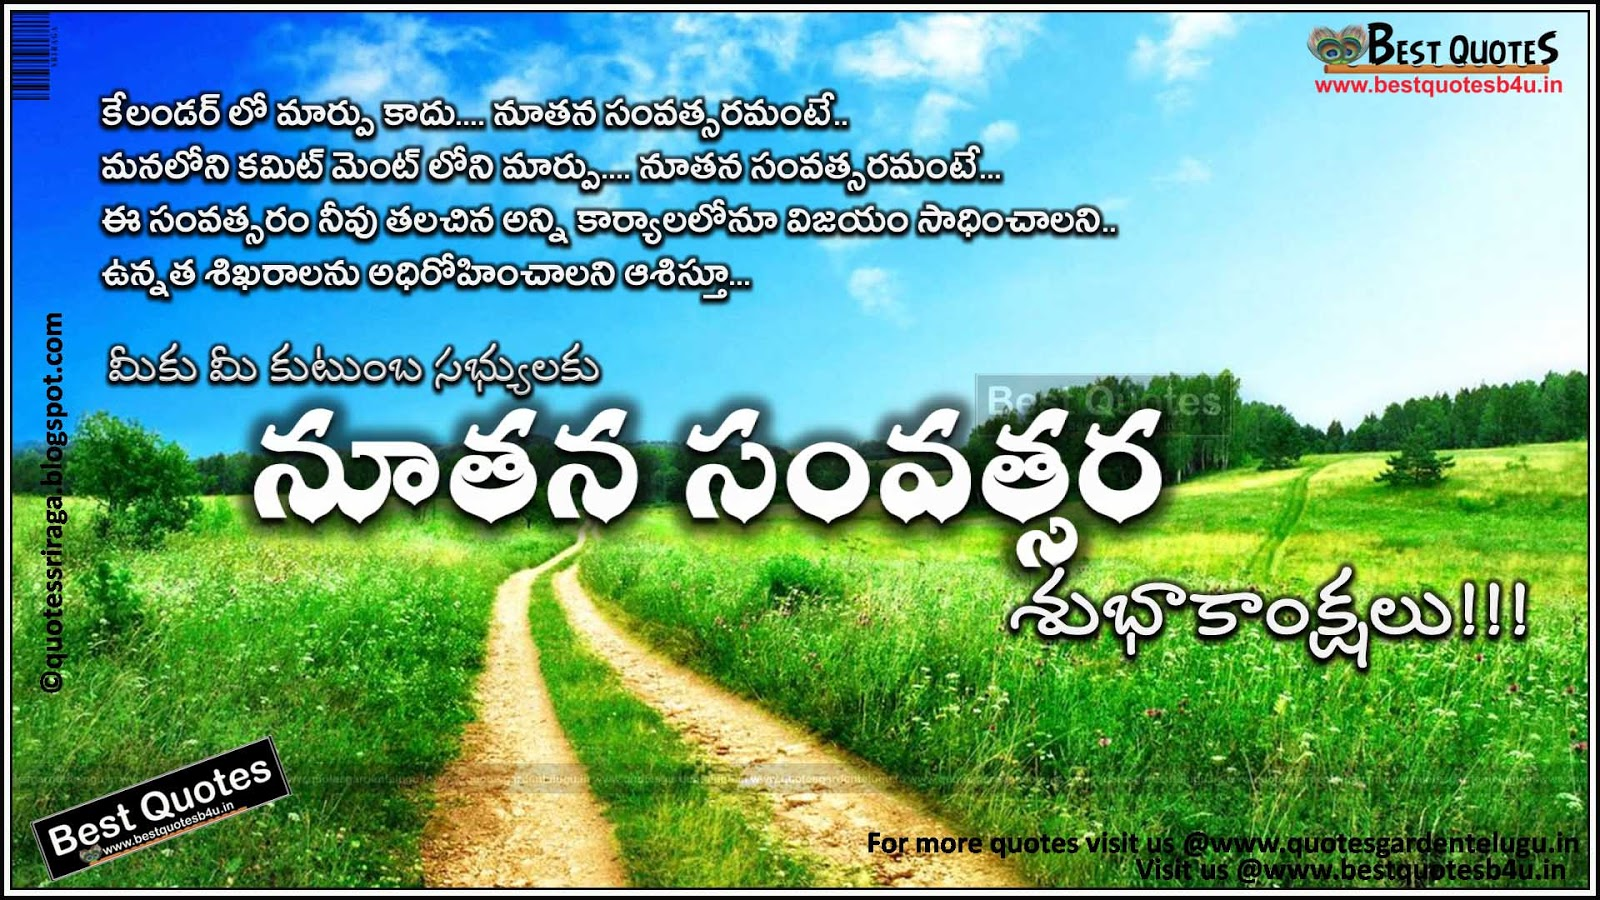 Best new year thoughts resolutions decisions greetings for friends best new year thoughts resolutions decisions greetings for friends in telugu kristyandbryce Gallery